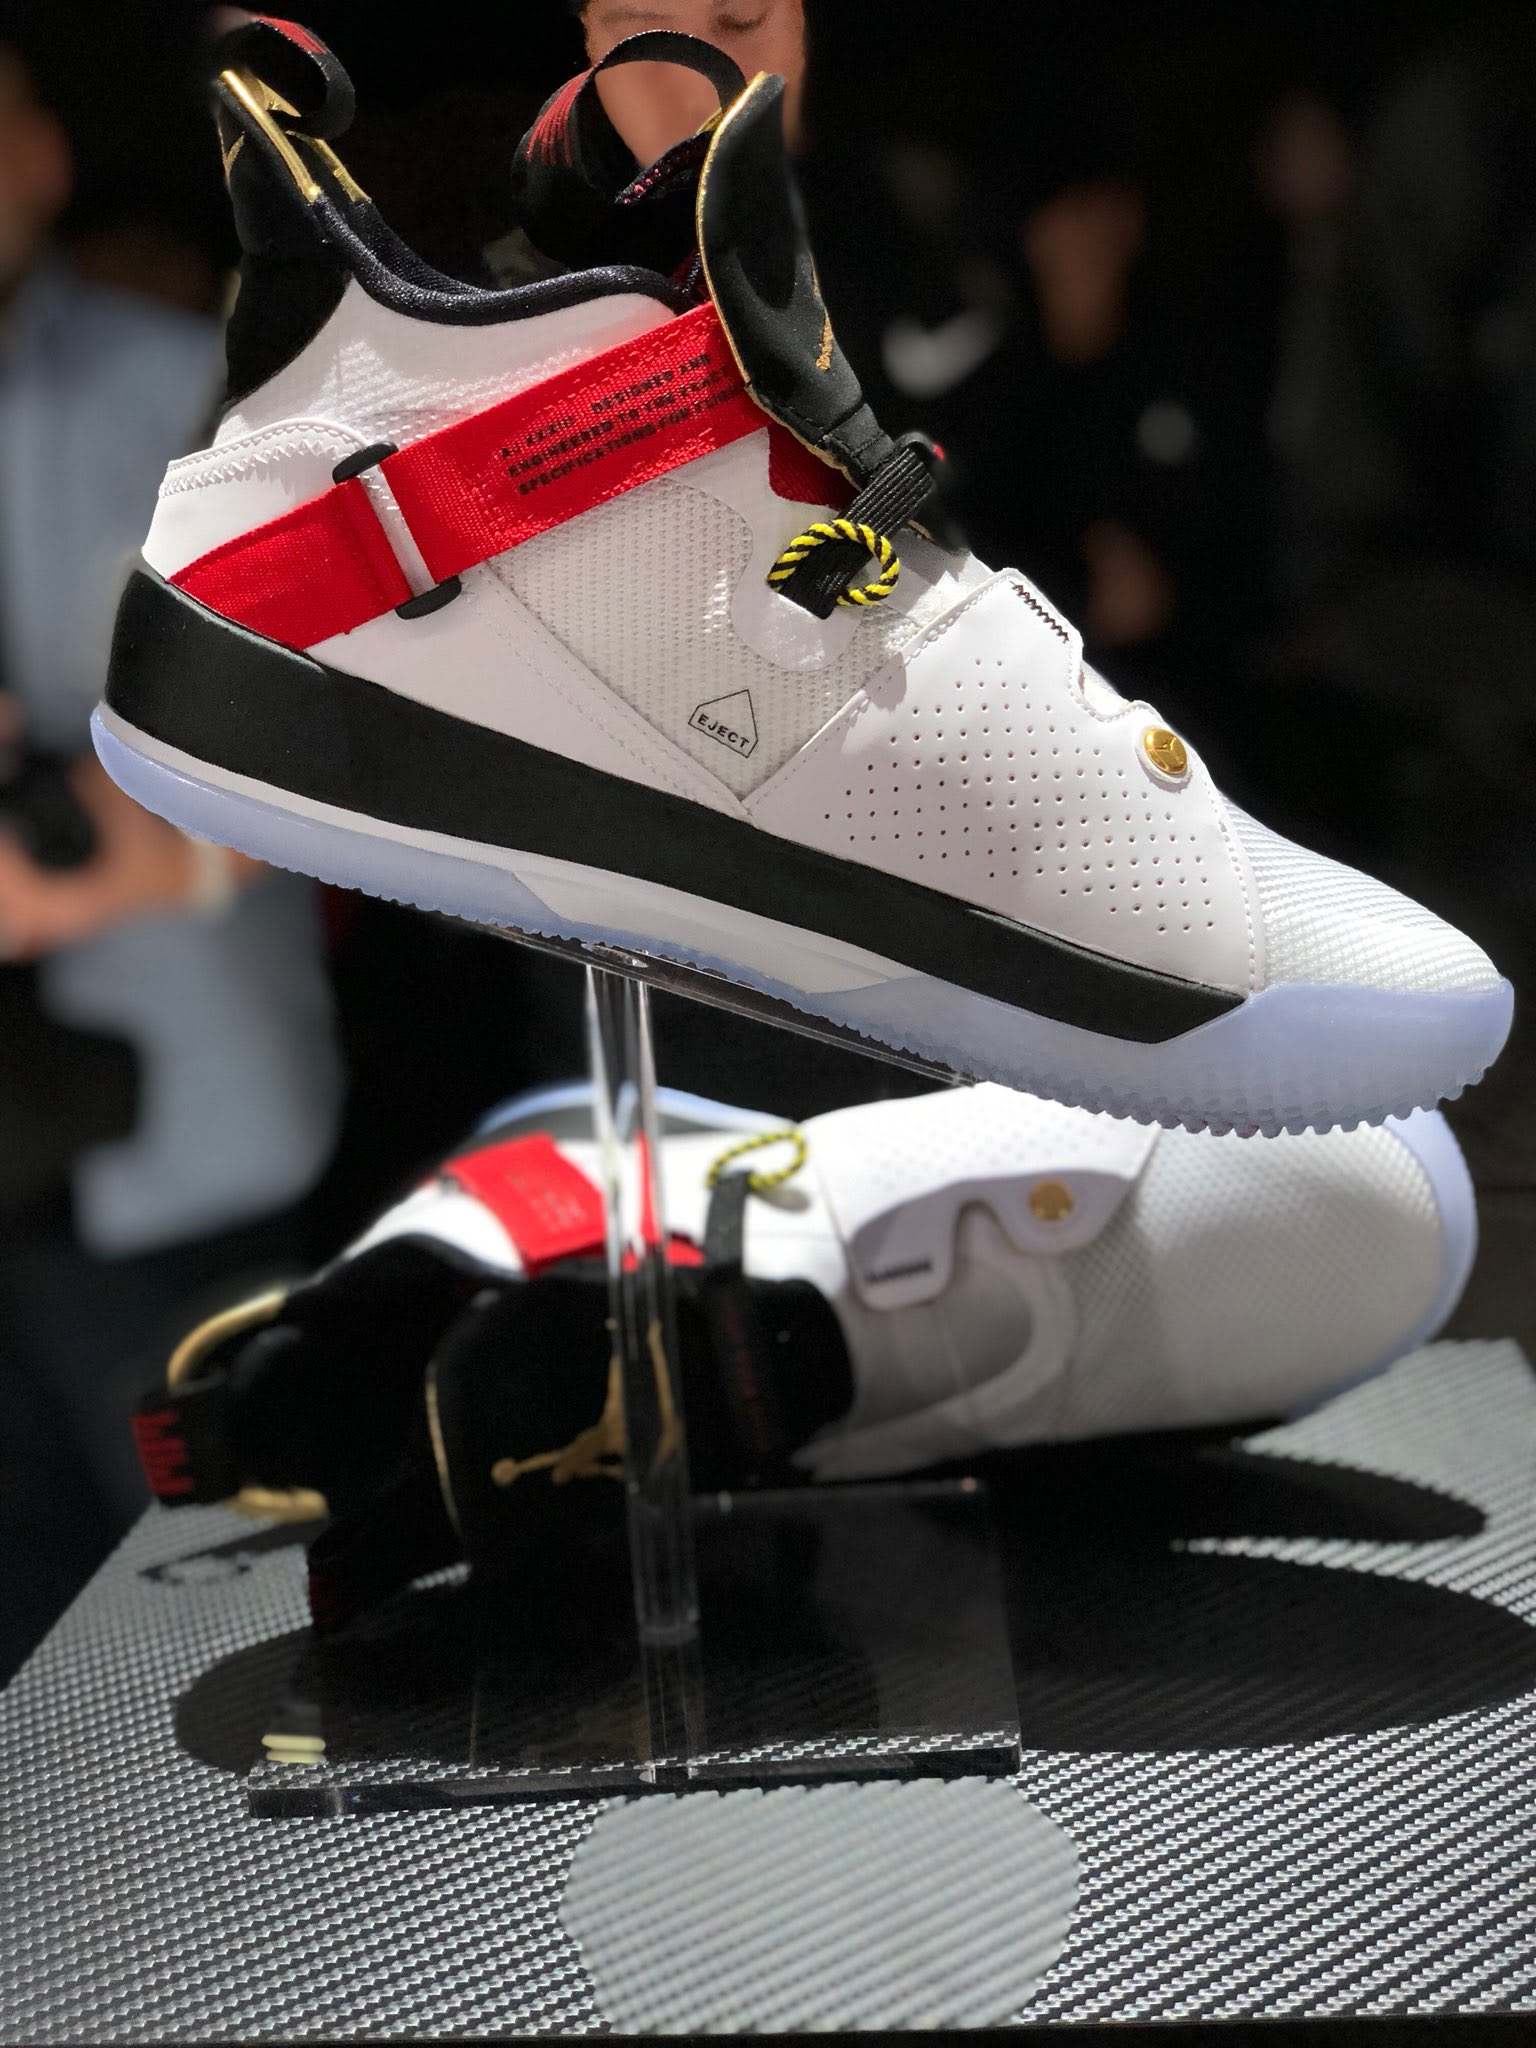 best service 43c2c 6b961 Image via Gerald Flores Air Jordan 33 White Black Red Launch Release Date  Medial